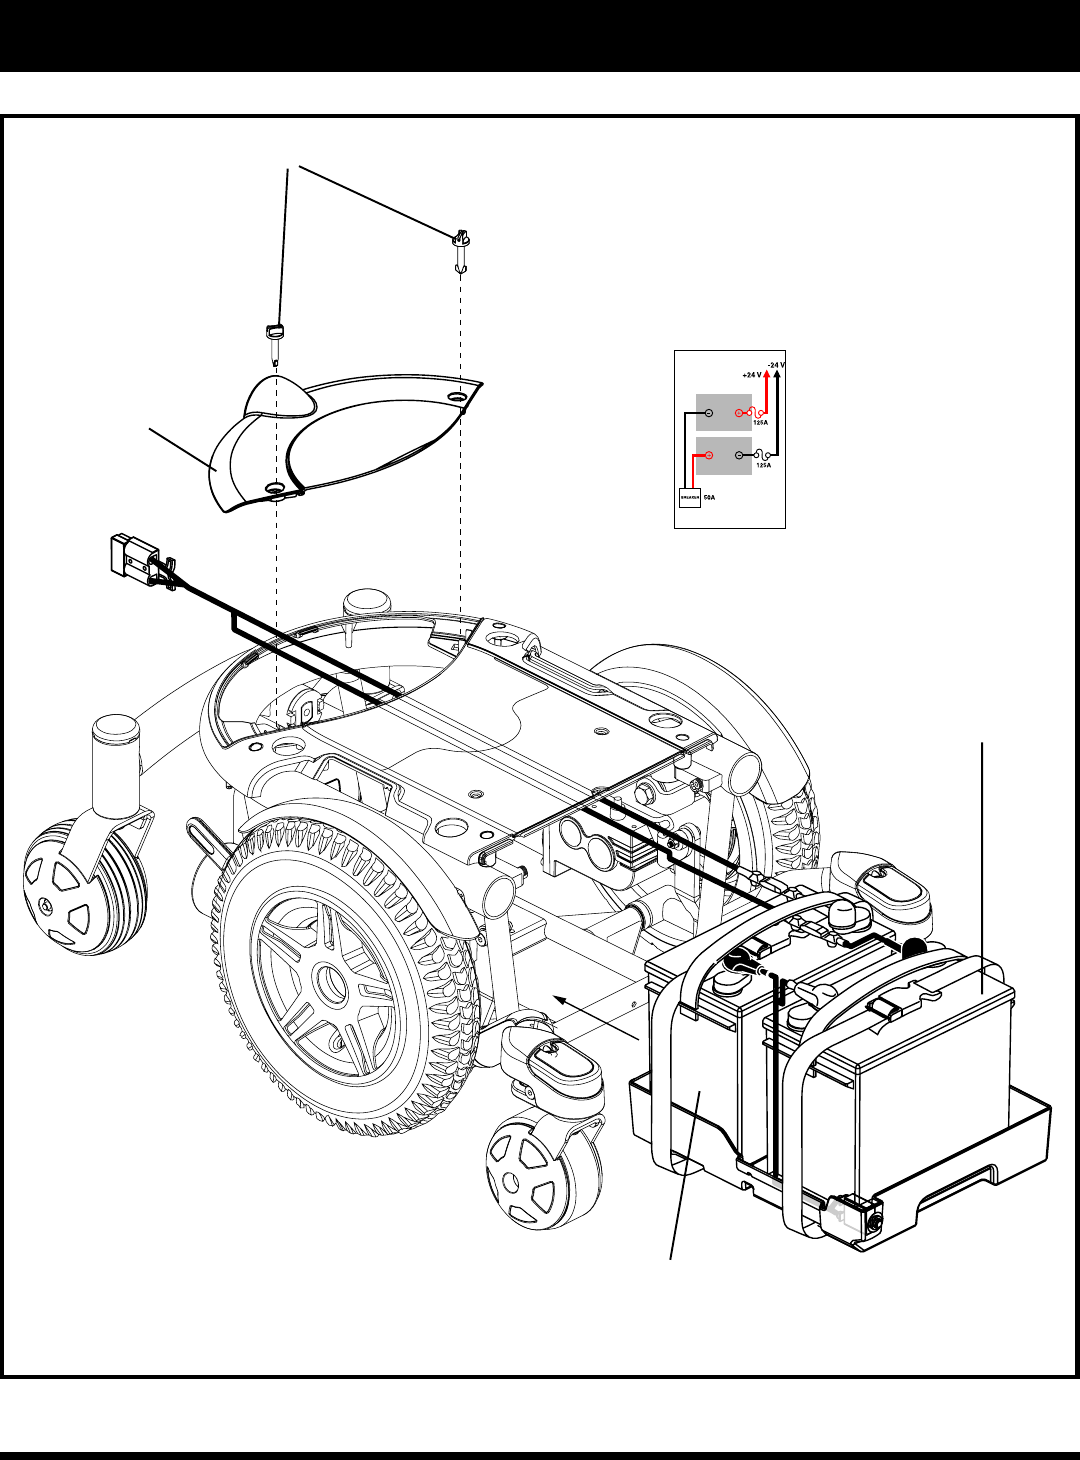 Jazzy Wheelchair Wiring Diagram